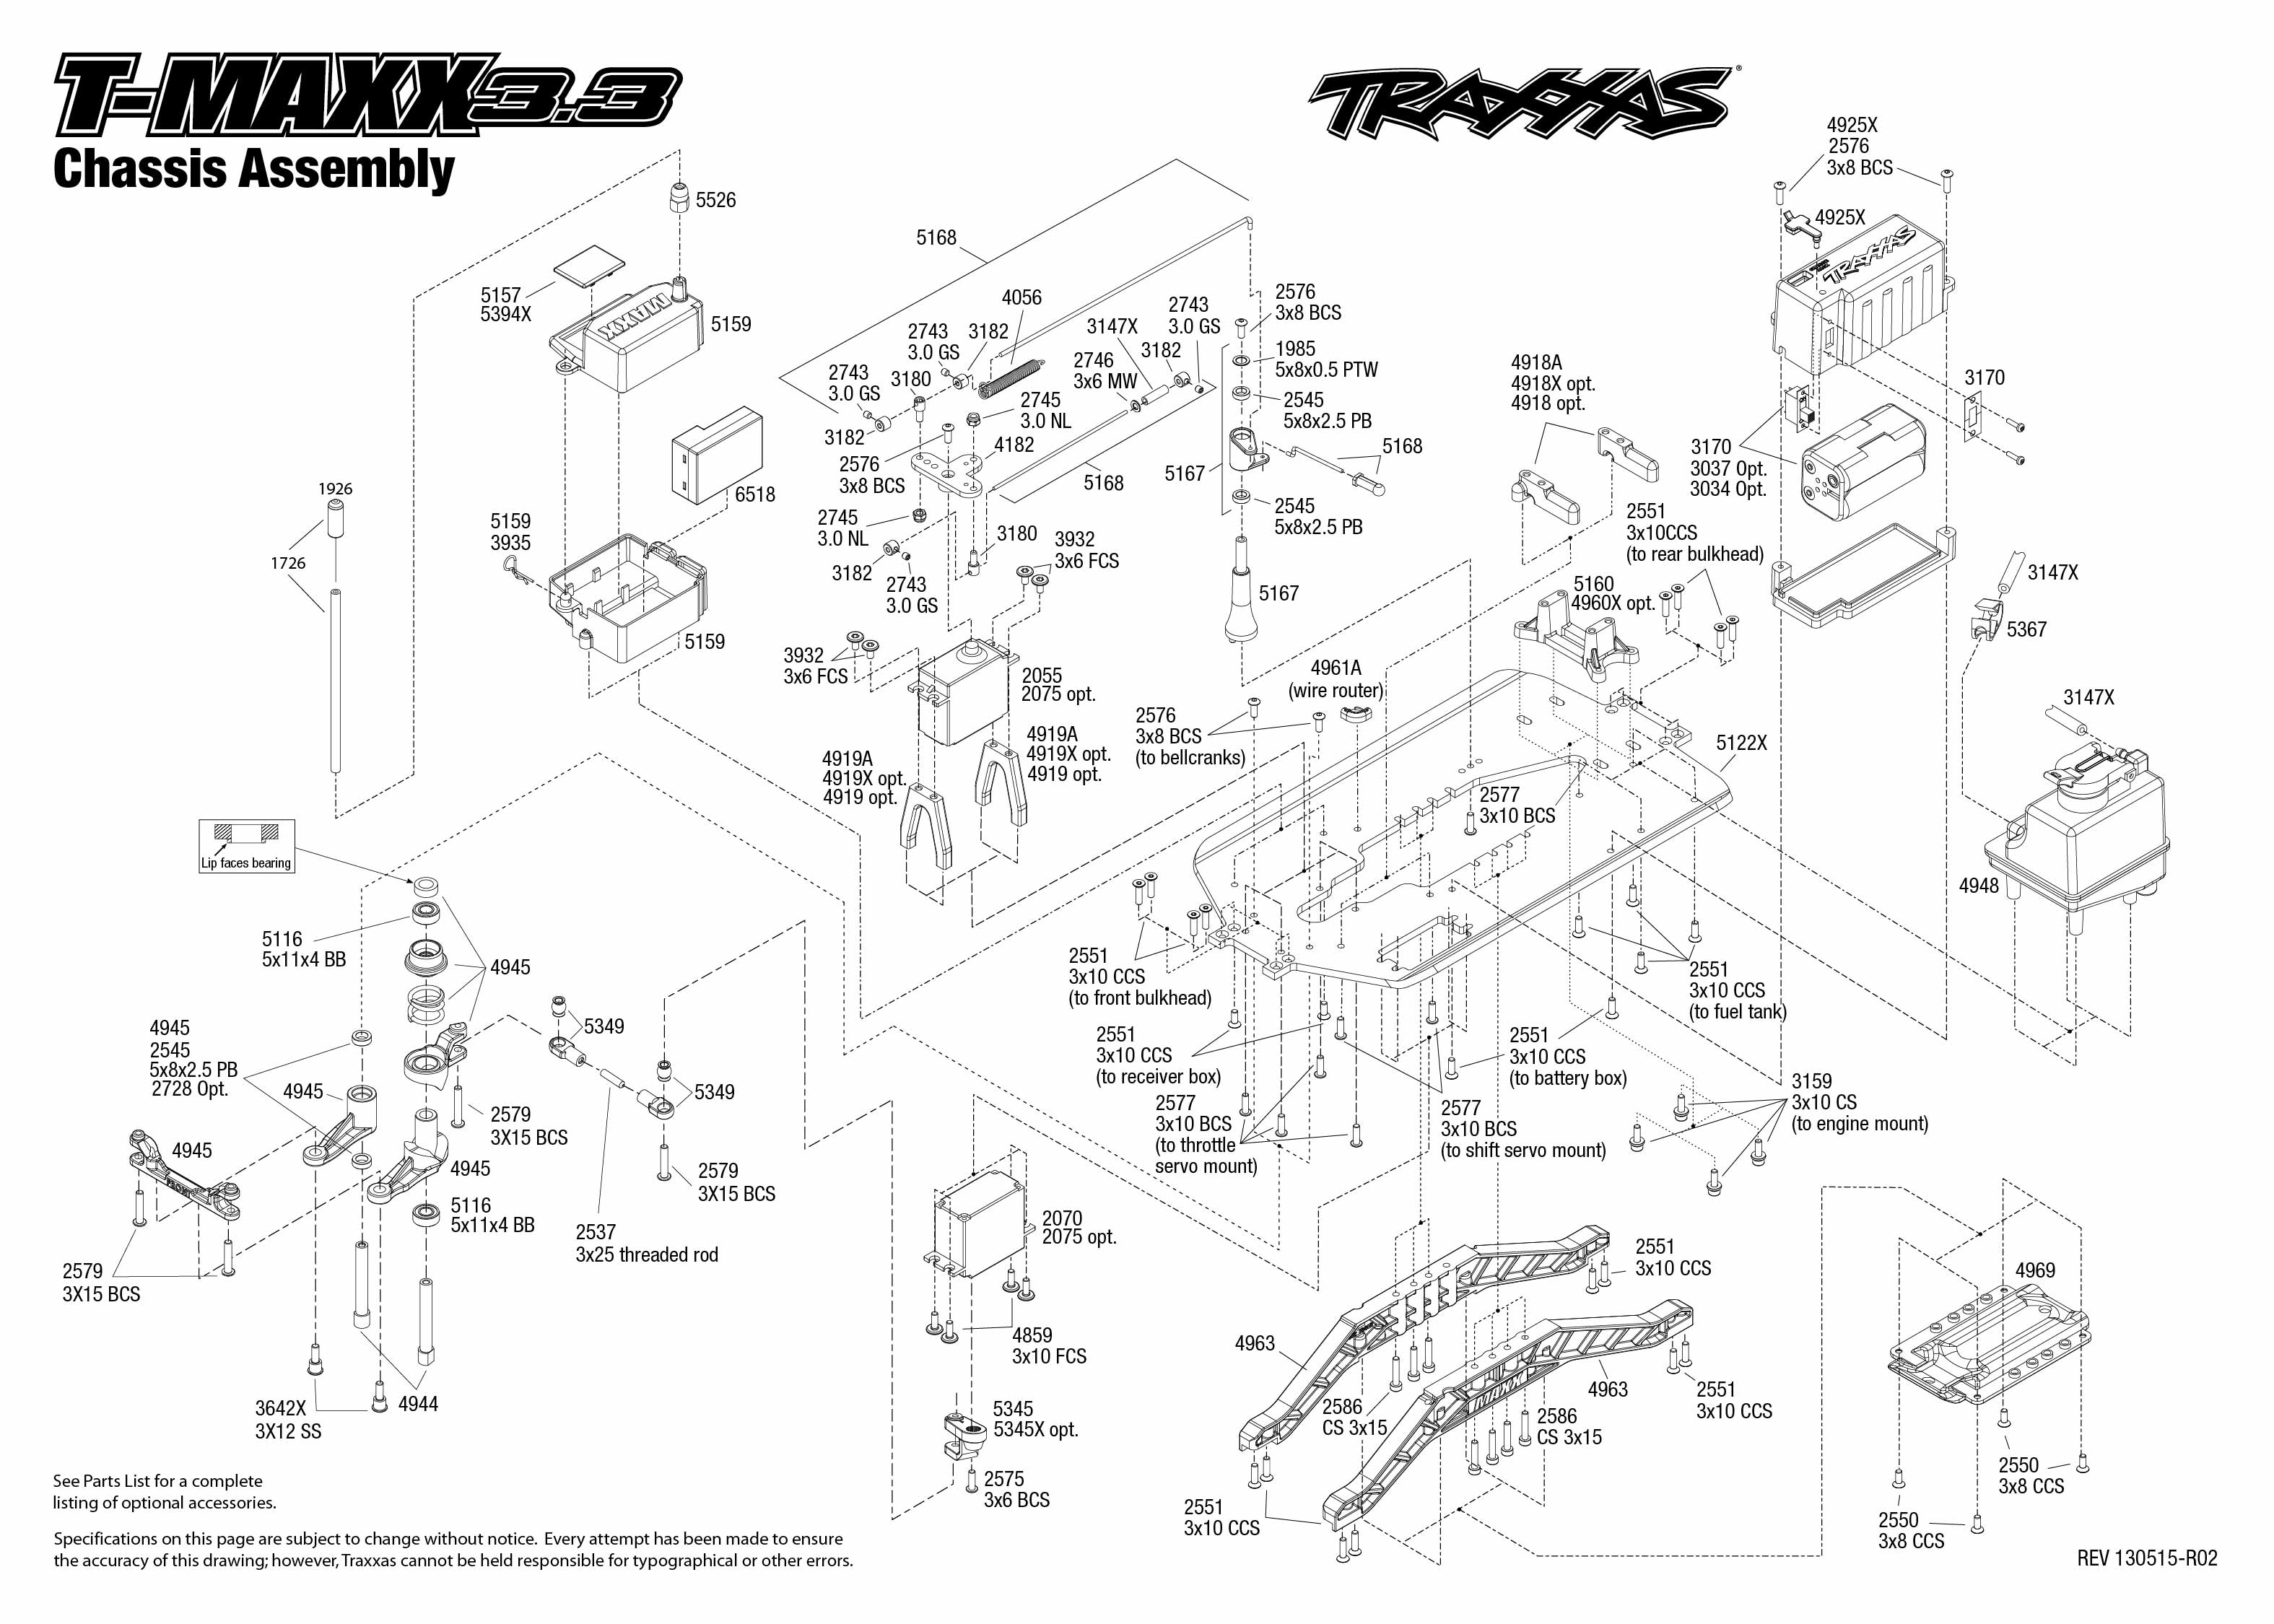 Traxxas 6518 Wiring Diagram